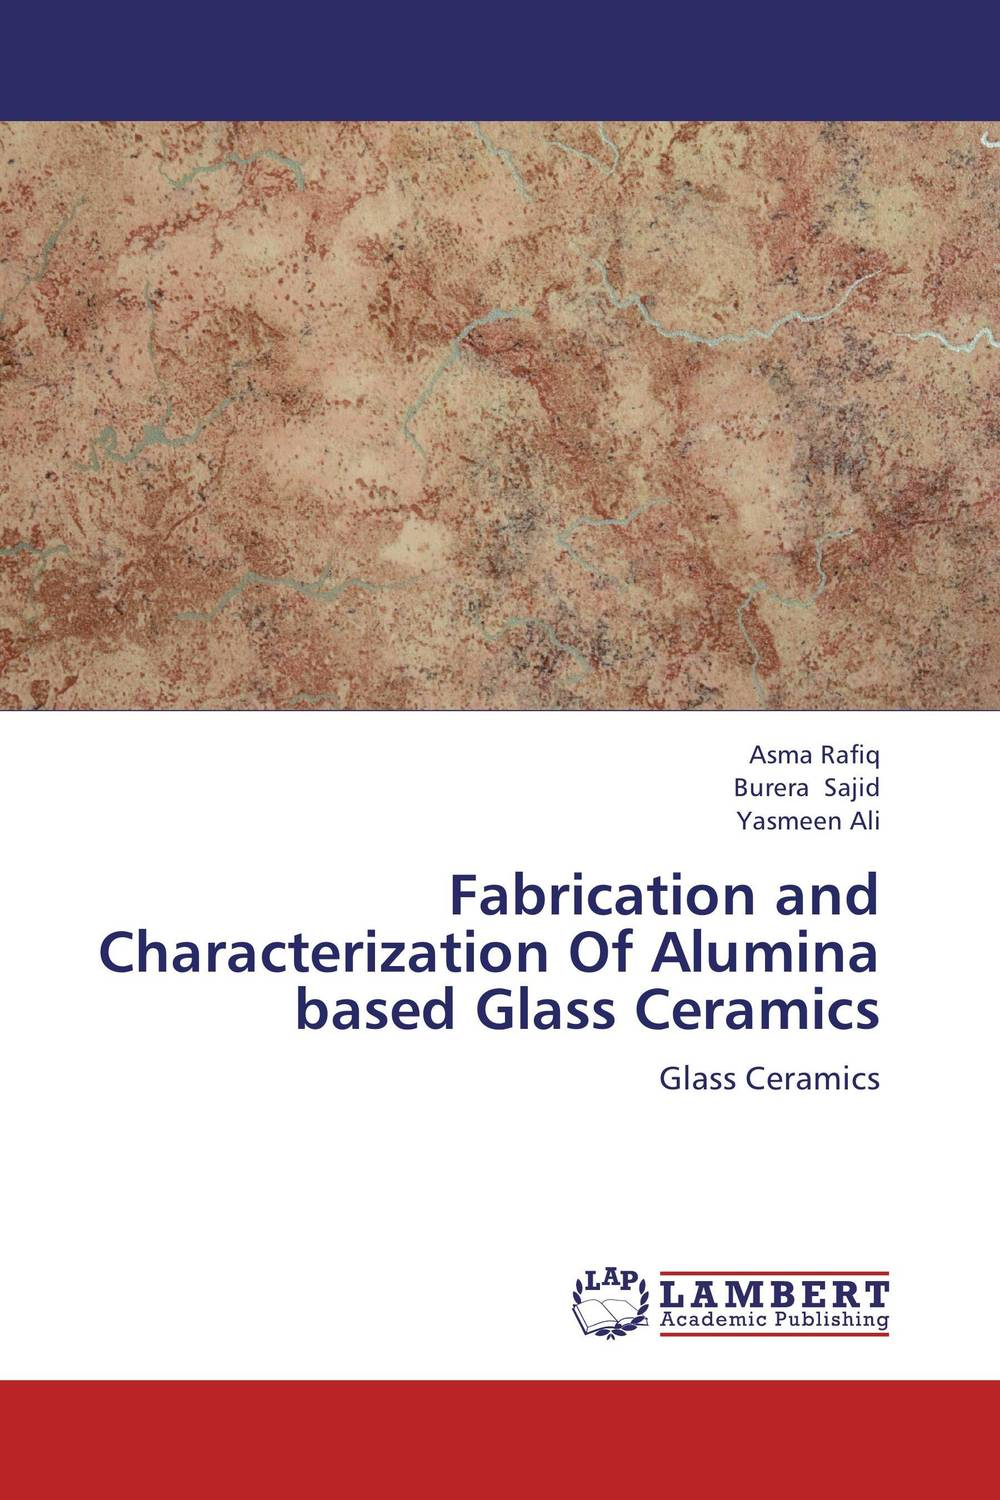 Fabrication and Characterization Of Alumina based Glass Ceramics толстовка gap gap ga020emtlv27